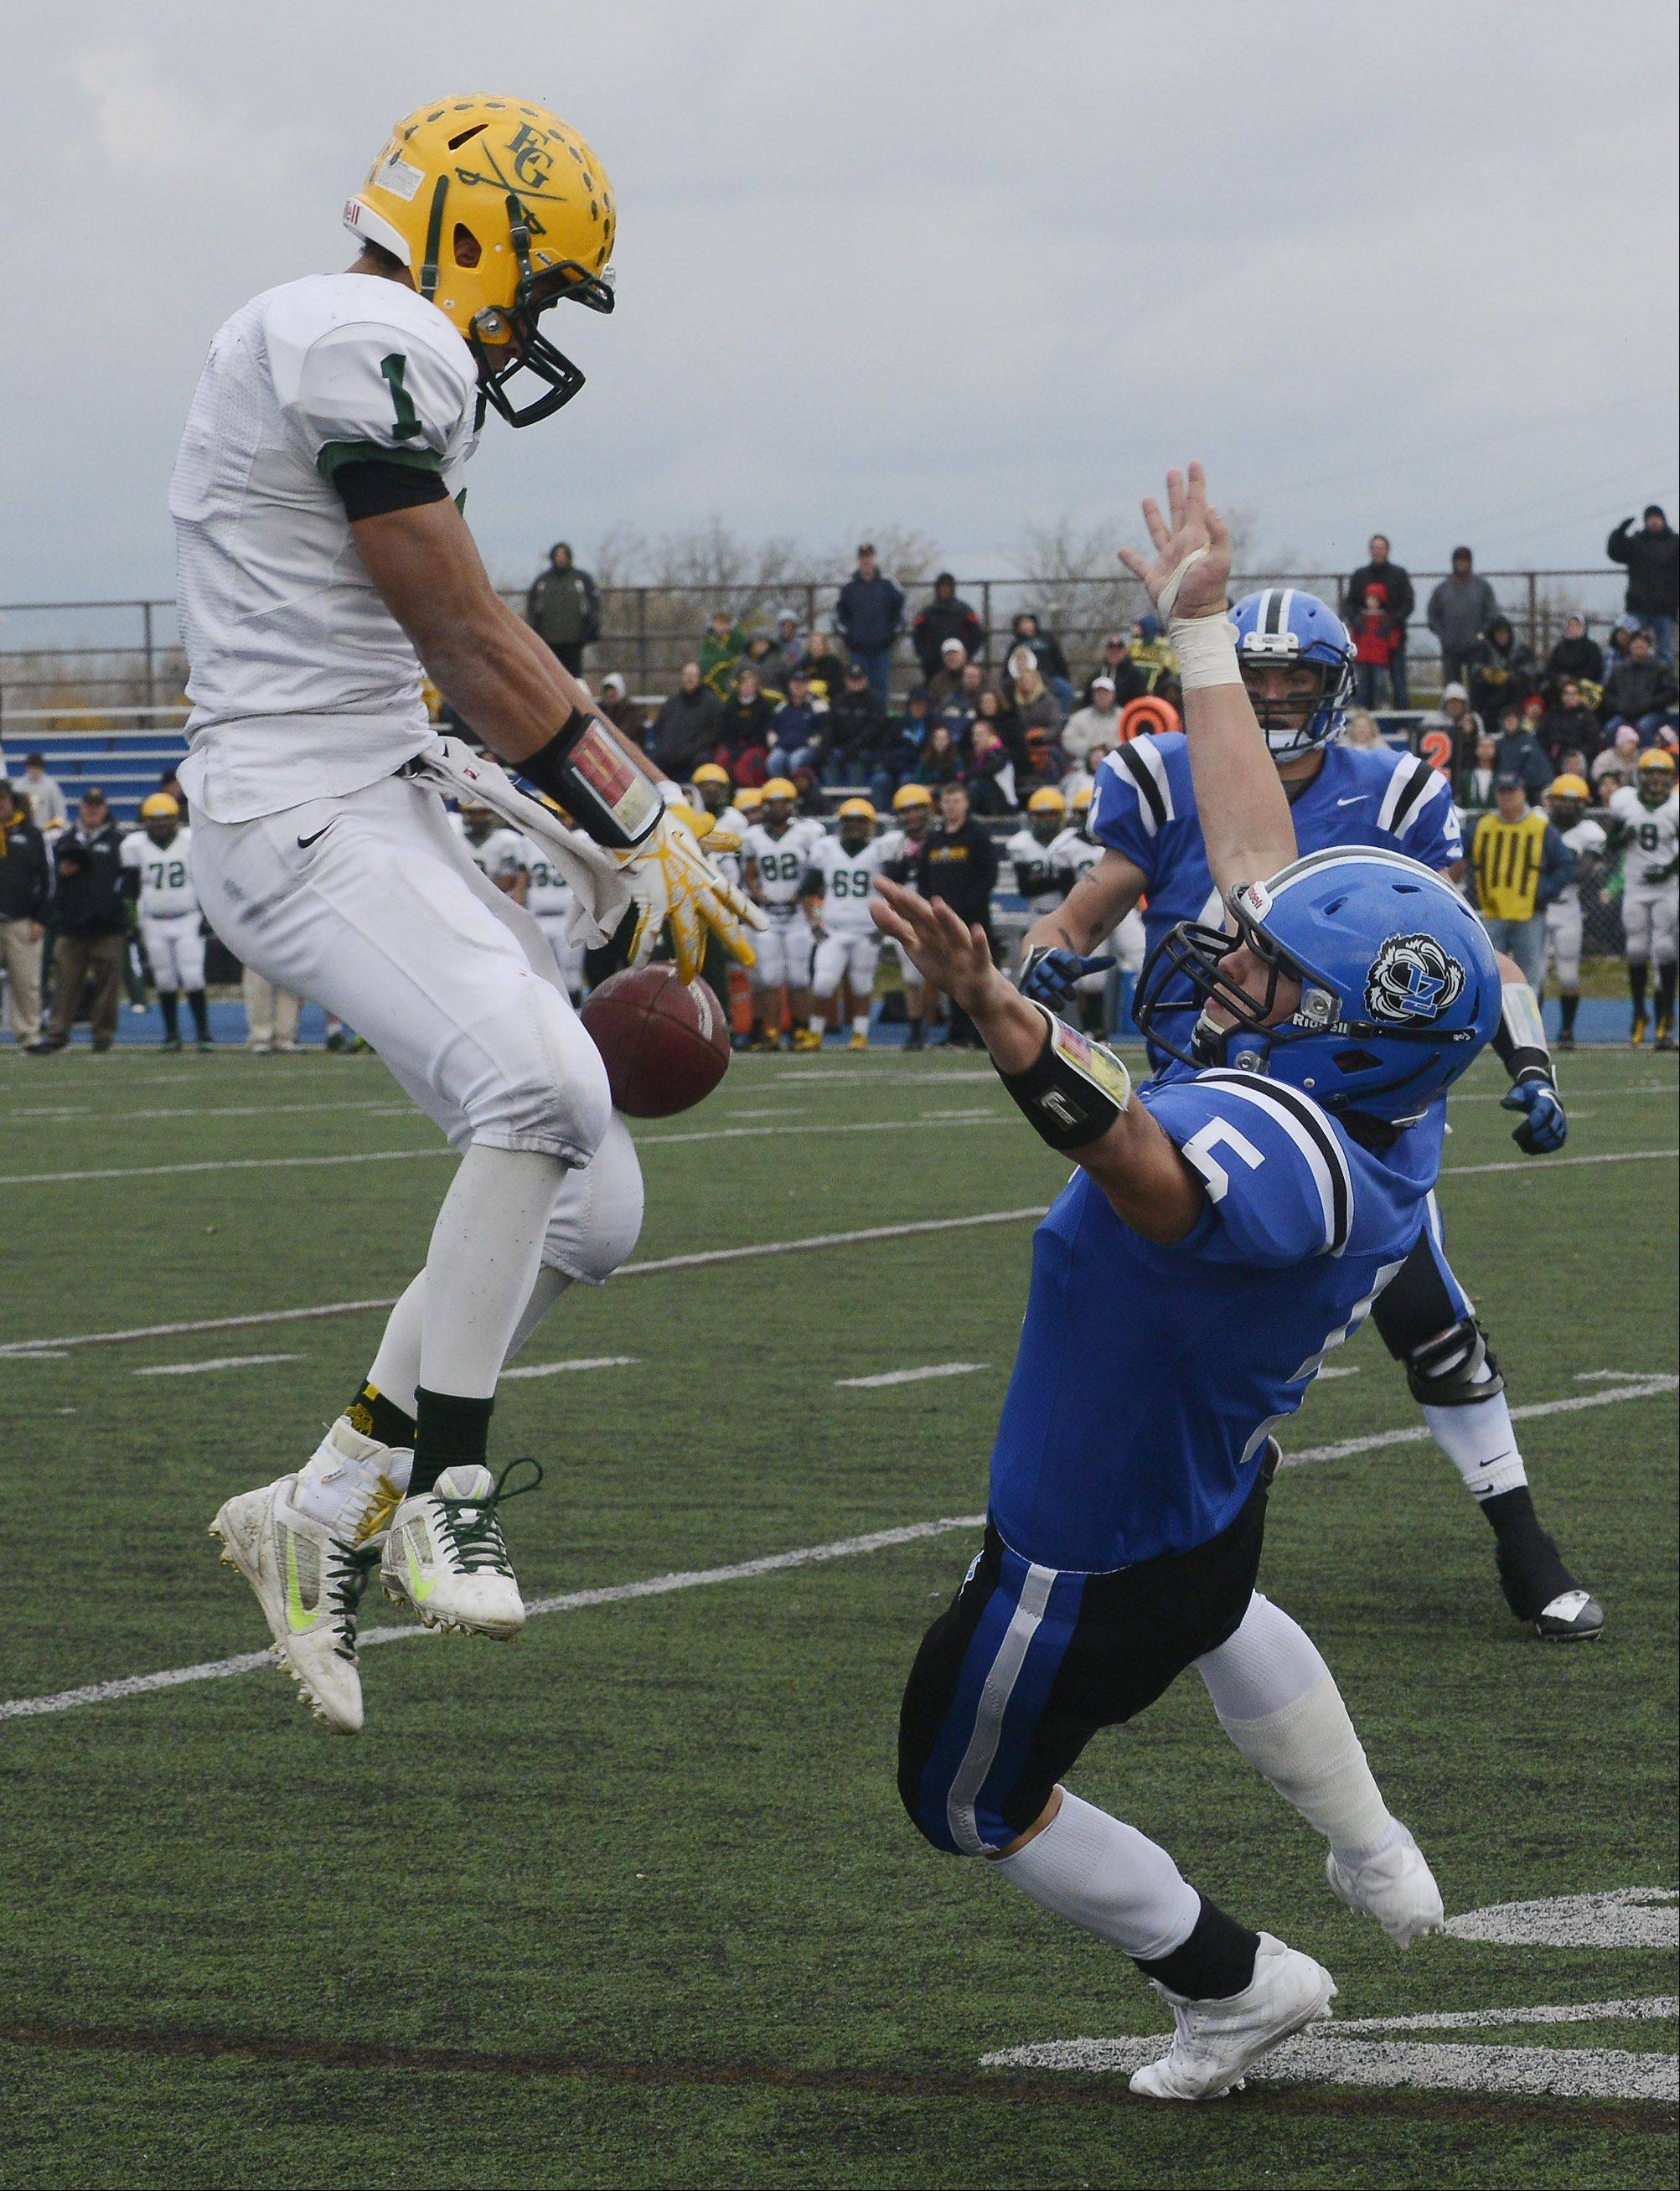 Elk Grove's John Pass, left, can't hang onto a pass but prevents an interception by Lake Zurich's Sam Walstrum during Saturday's Class 7A playoff game.